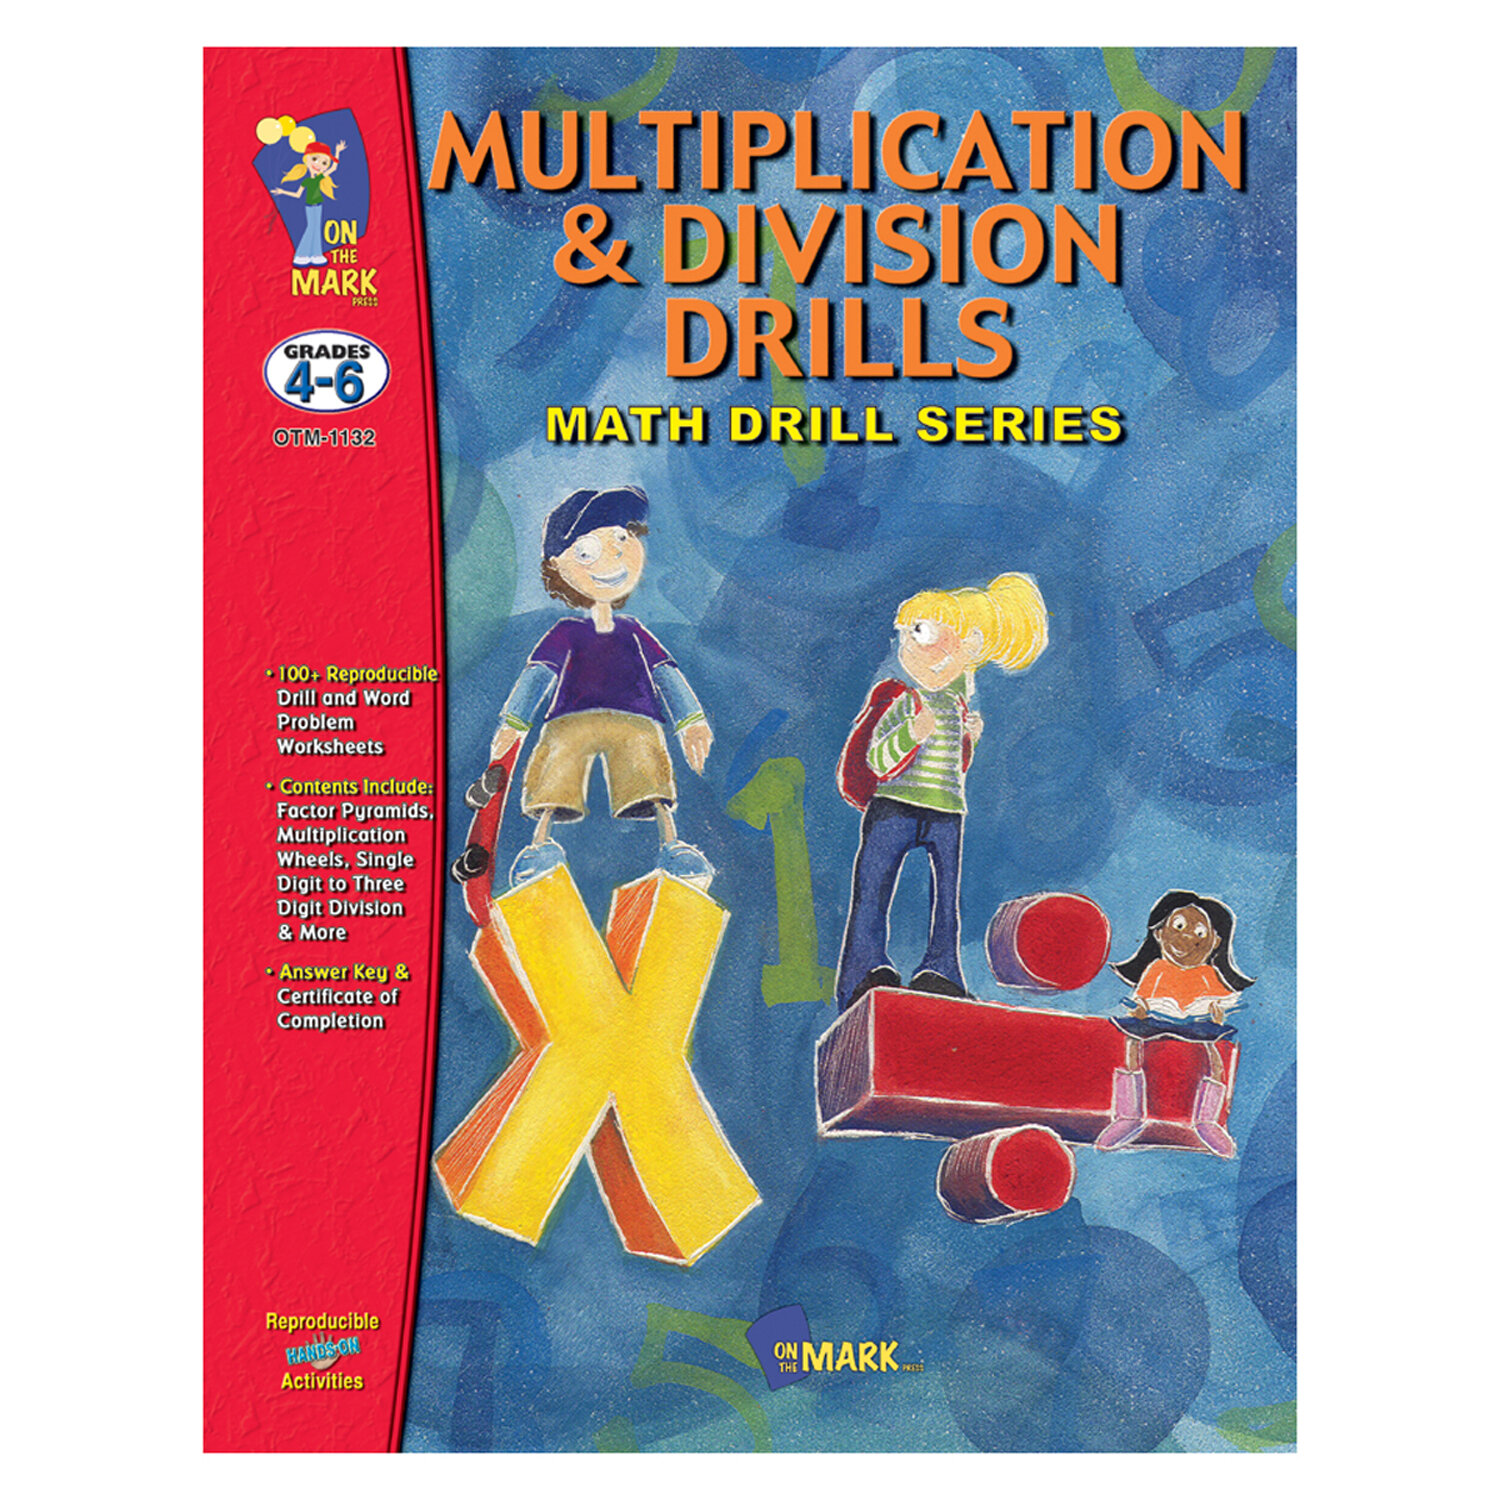 On the Mark Multiplication and Division Drills Book | Wayfair